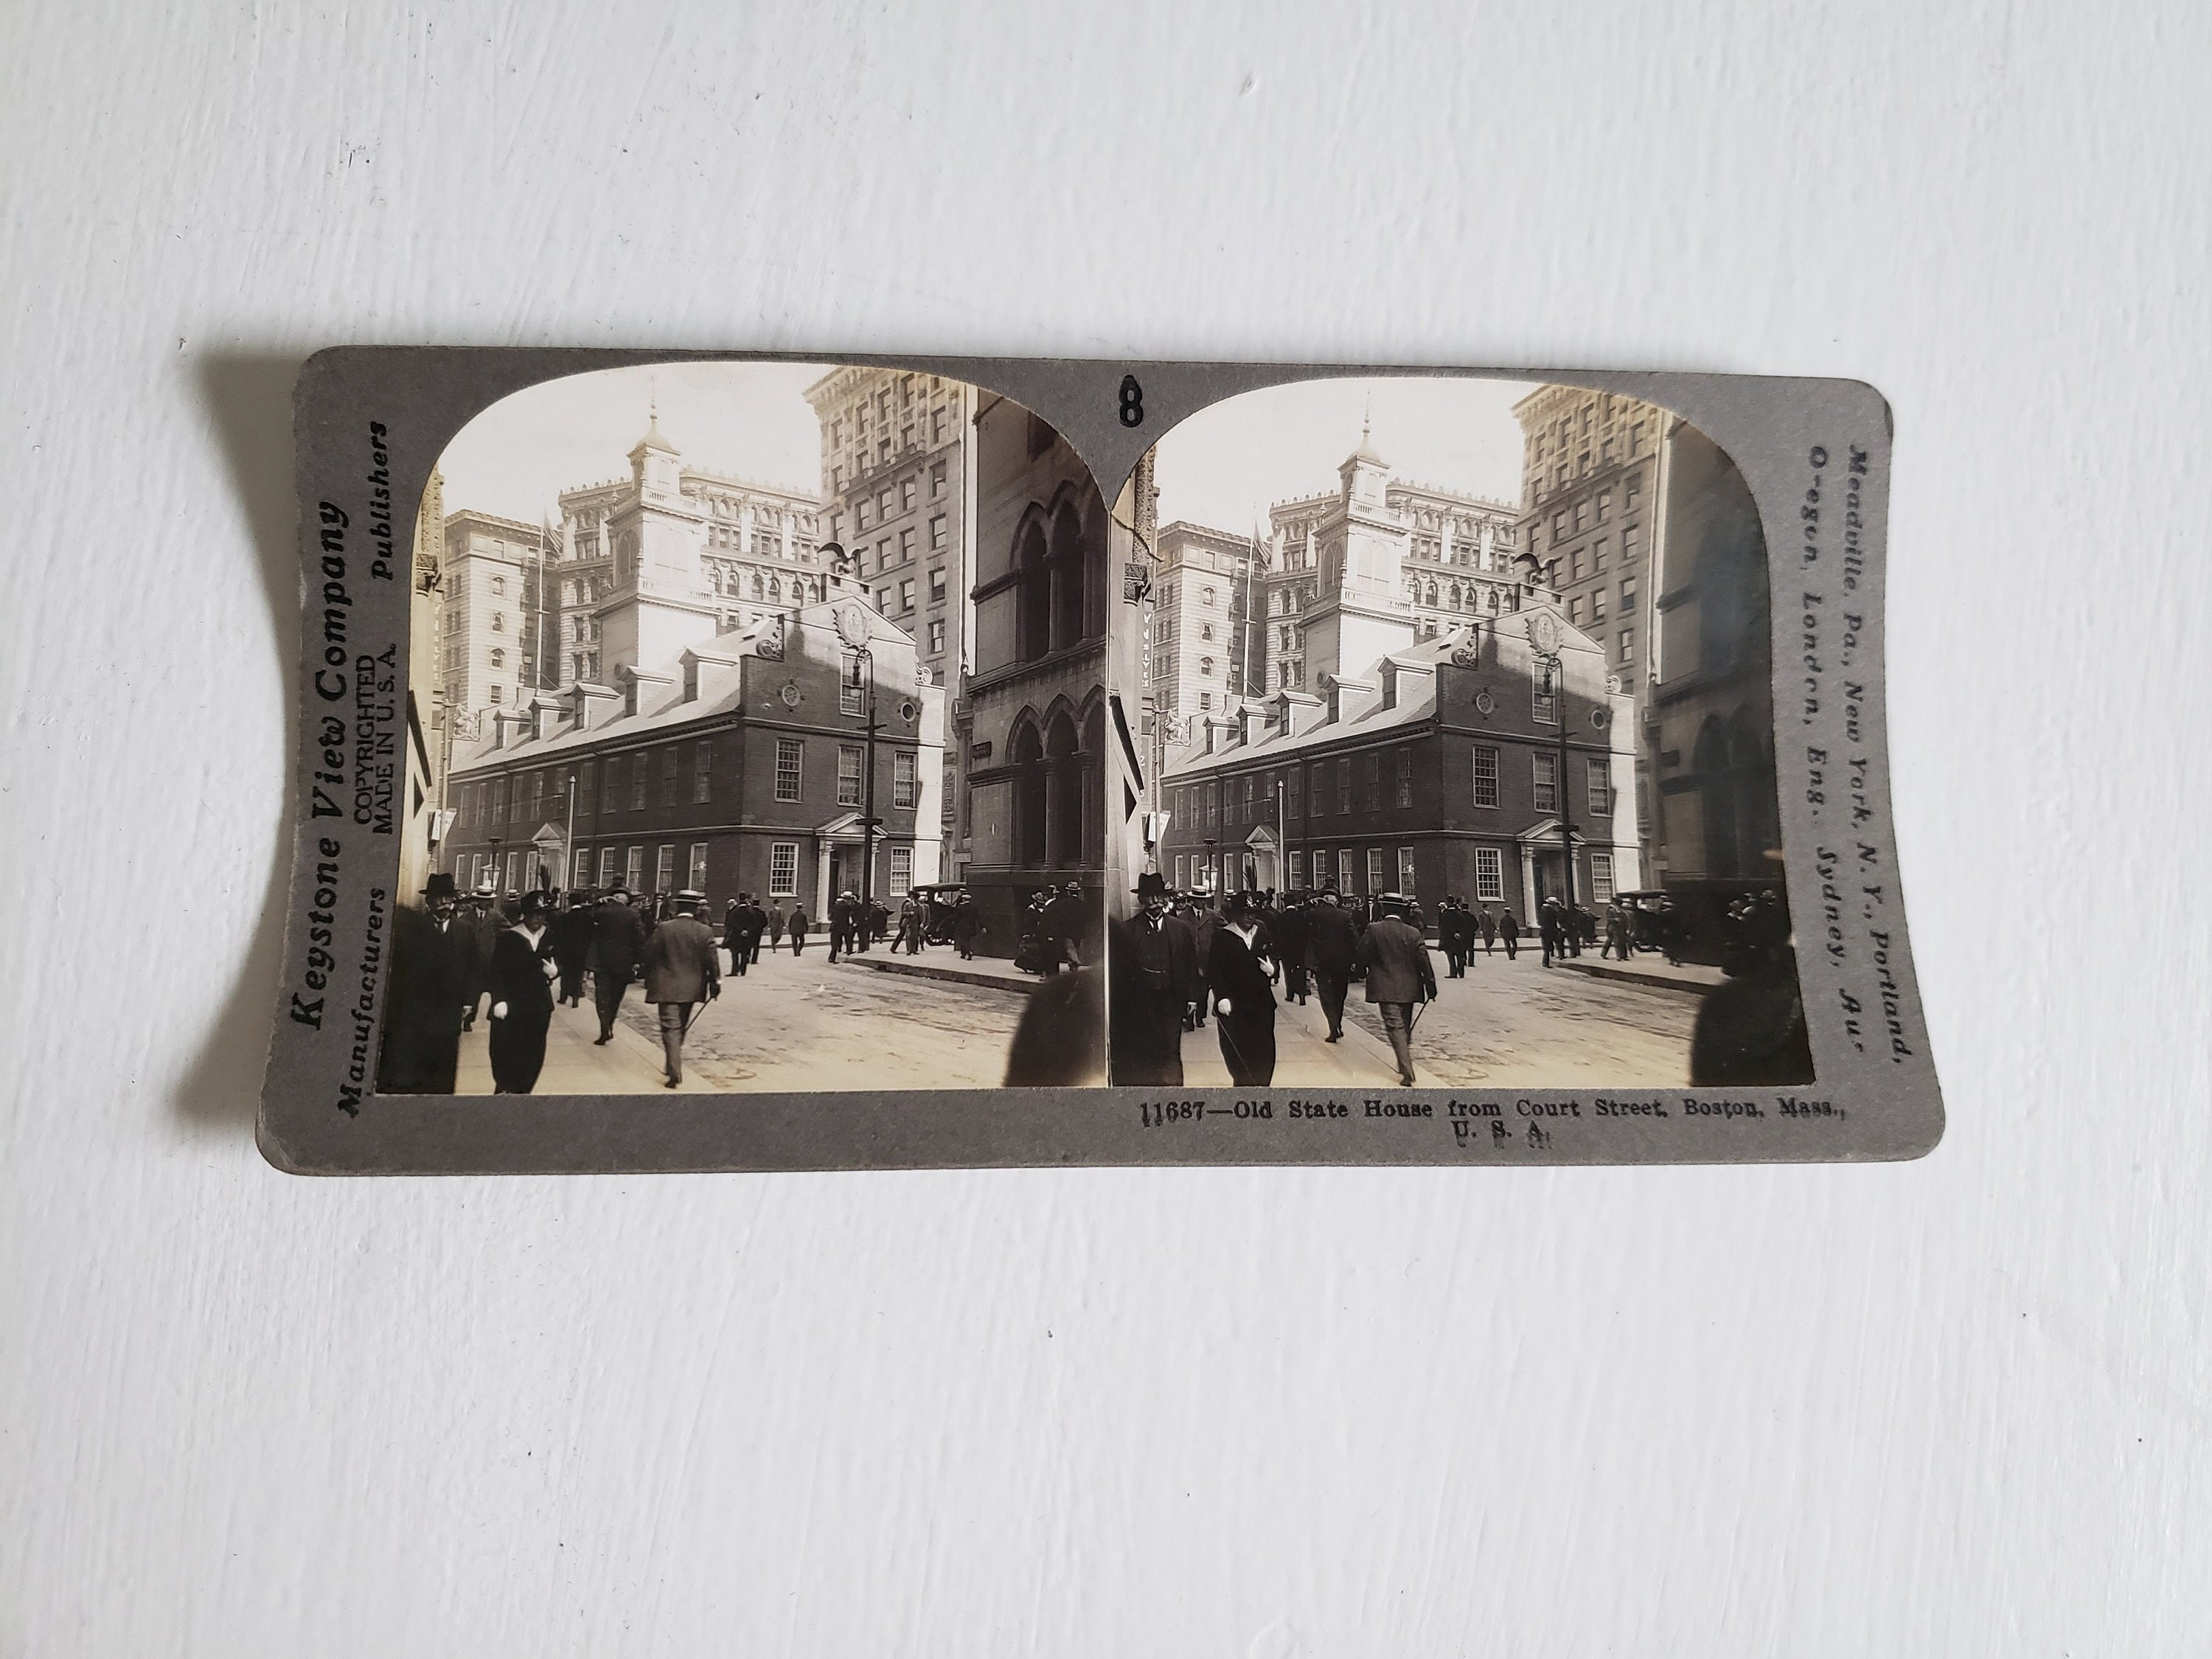 Antique Old State House Keystone View Company Stereoscope Stereopticon  Viewer Card --- Vintage Boston History Collectible Photography